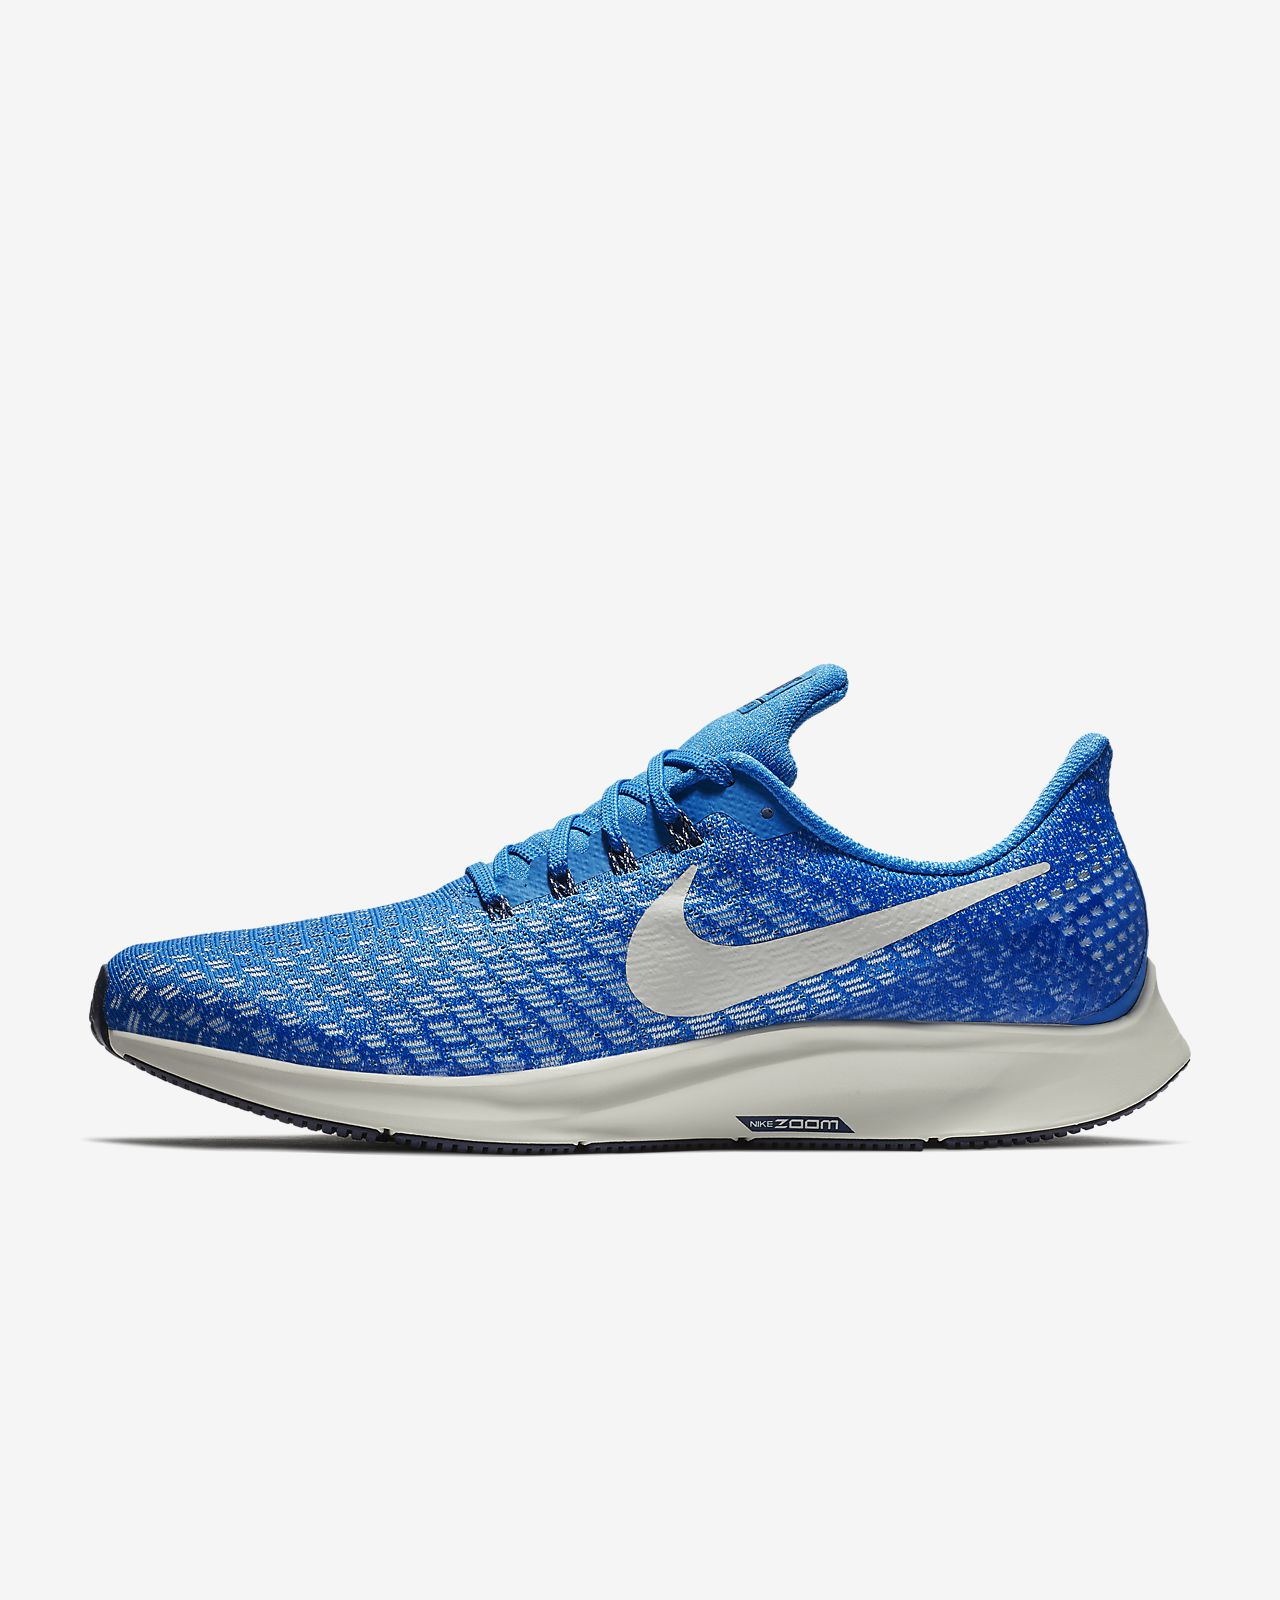 reputable site e7189 b7bee ... Nike Air Zoom Pegasus 35 Men s Running Shoe